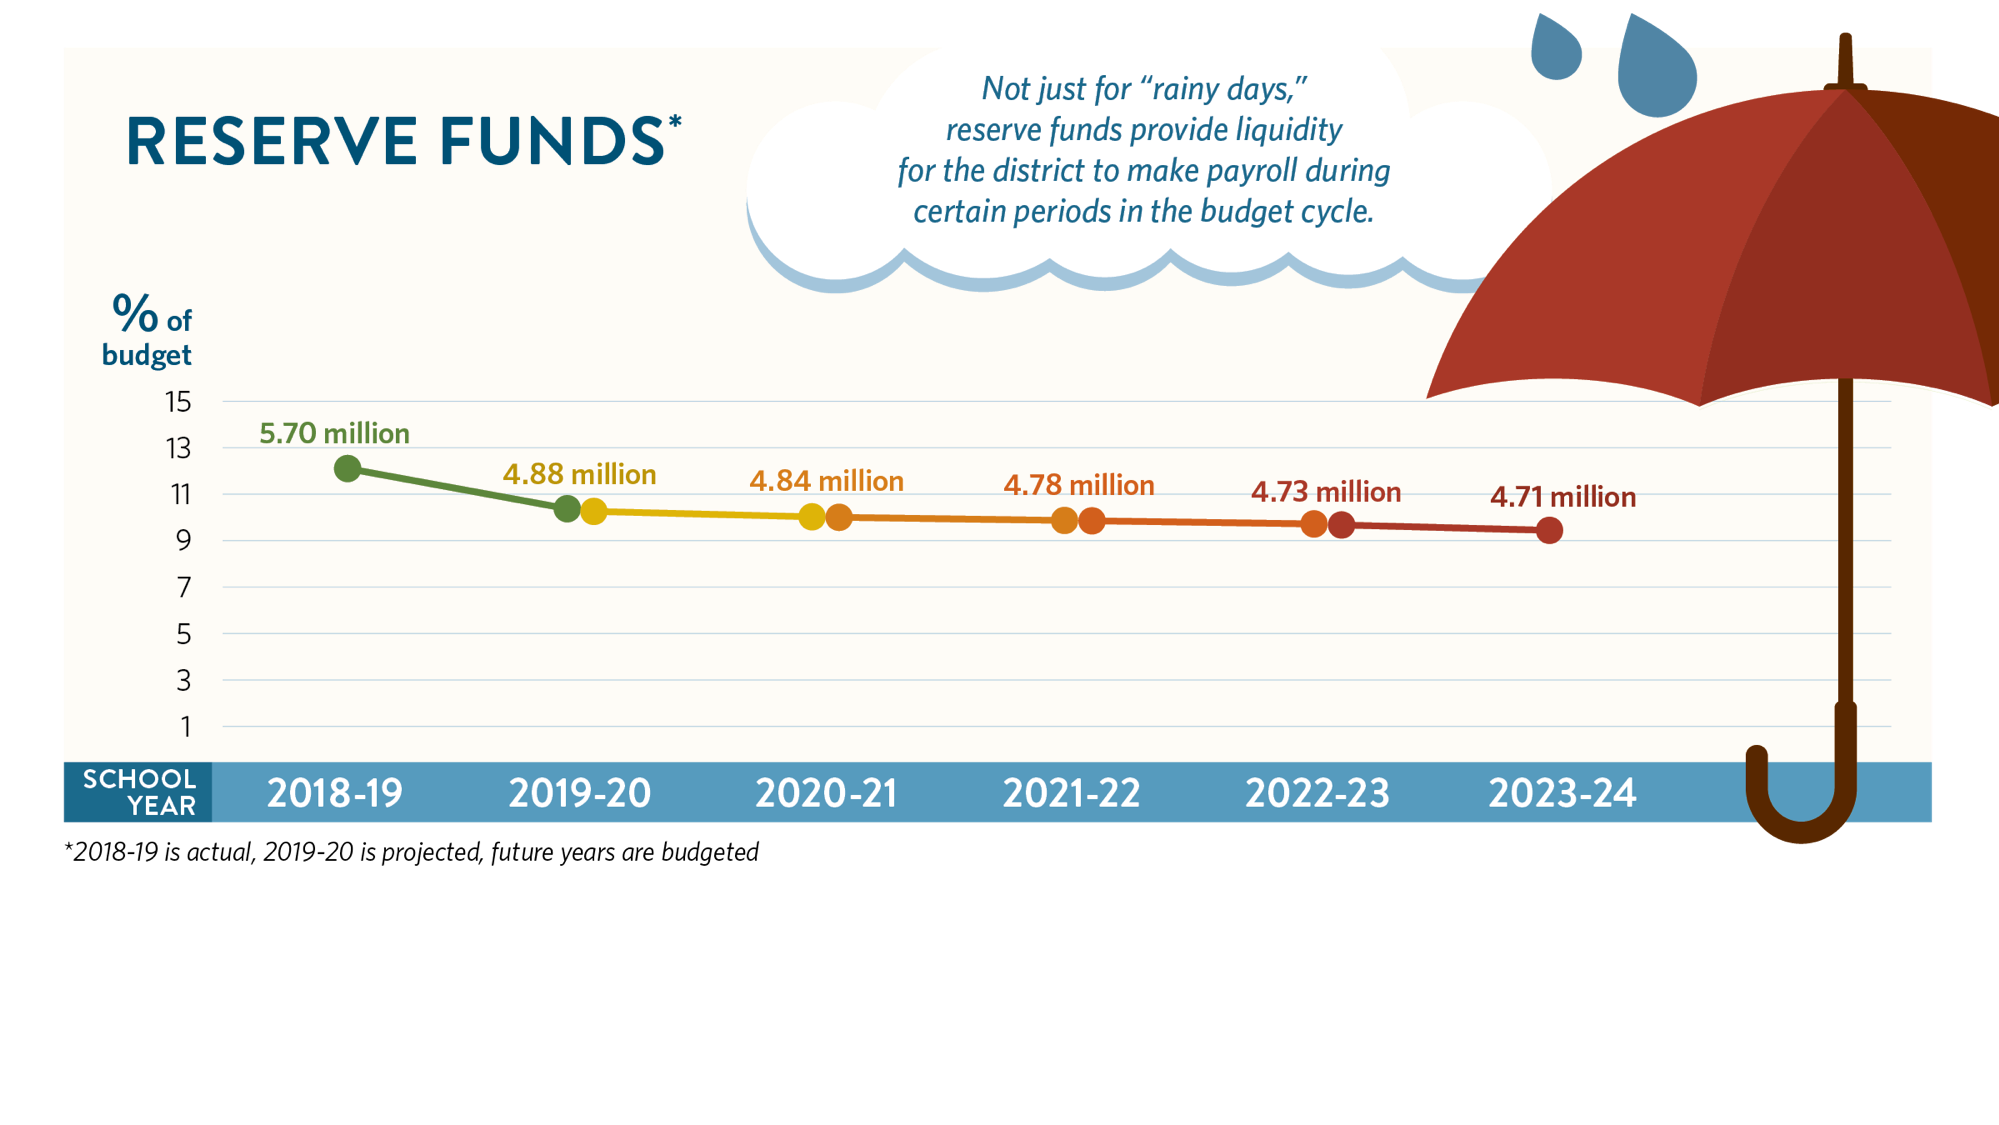 """Reserve funds are not just for """"rainy days,"""" they provide liquidity for the district to make payroll during certain periods in the budget cycle. 2018-19 at 5;7 million, 2019-2020 at 4.88 million, 2020-21 at 4.84 million, 2021-22 at 4.78 million, 2022-23 at 4.73 million, and 2023-24 at 4.71 million. 2018-19 is actual, 19-20 is projected, future years are budgeted. Graphic includes umbrella with raindrops and district logo with WashougalRising hashtag"""